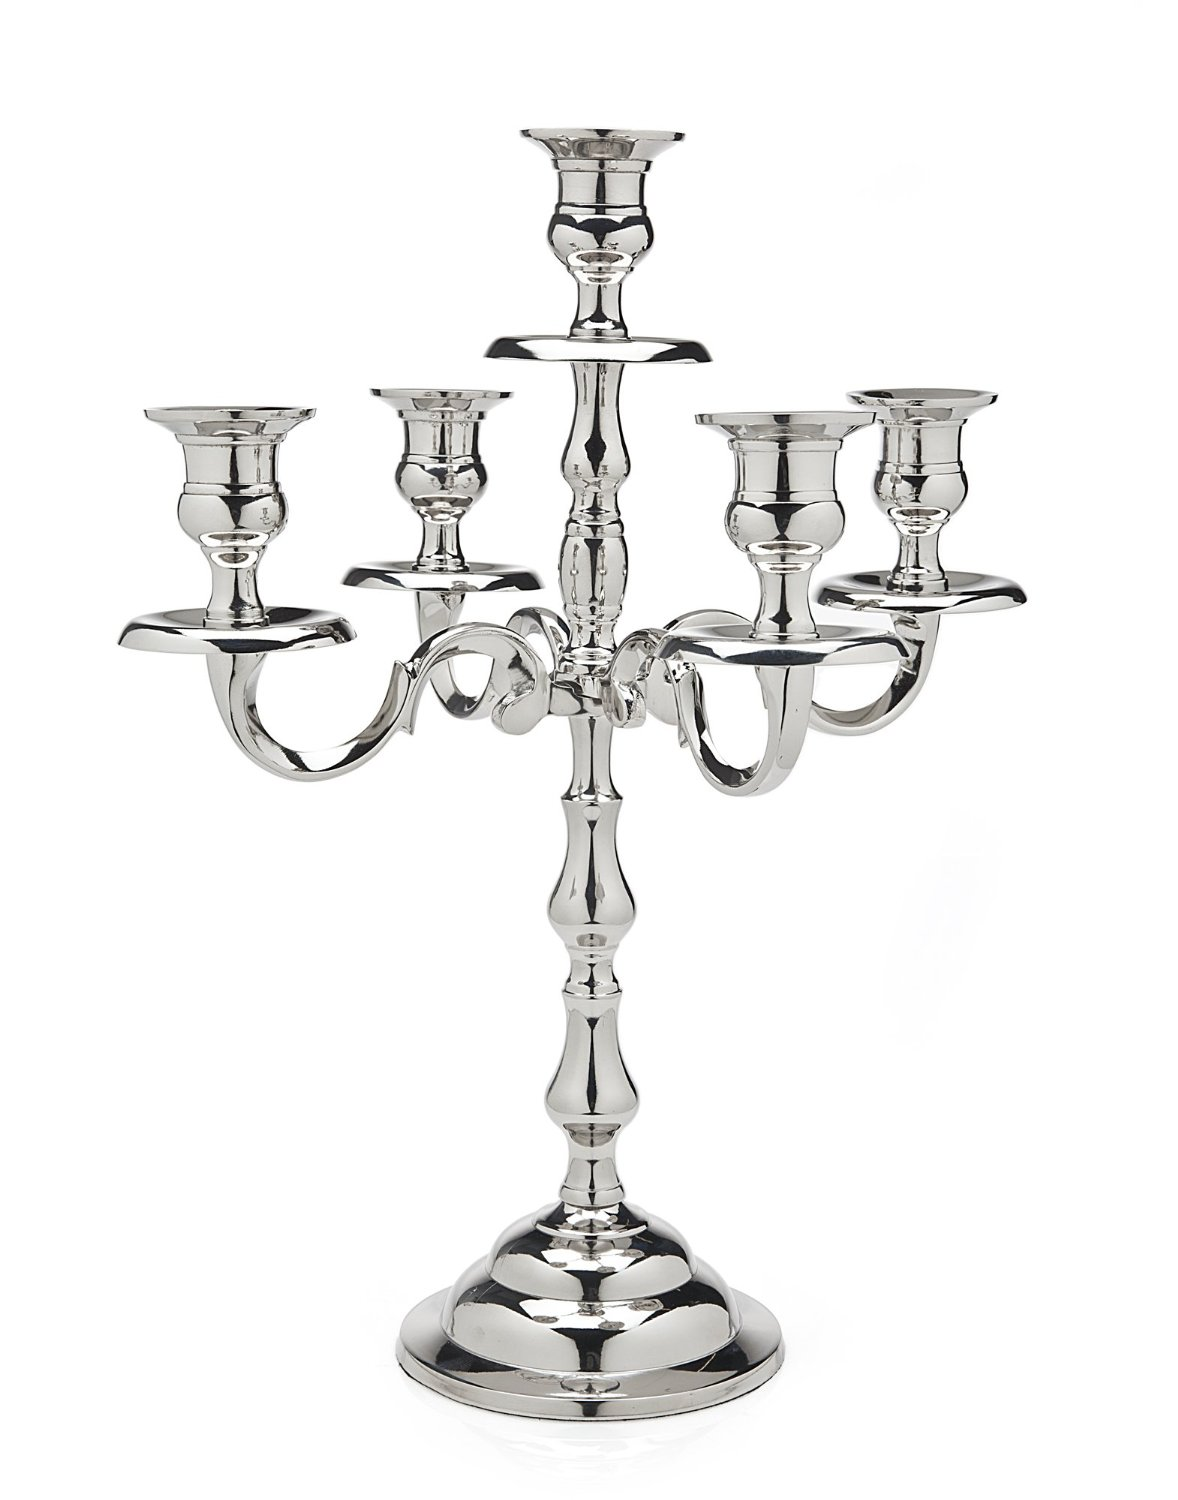 Classic Nickel Plated Candelabra 5 Light fluted